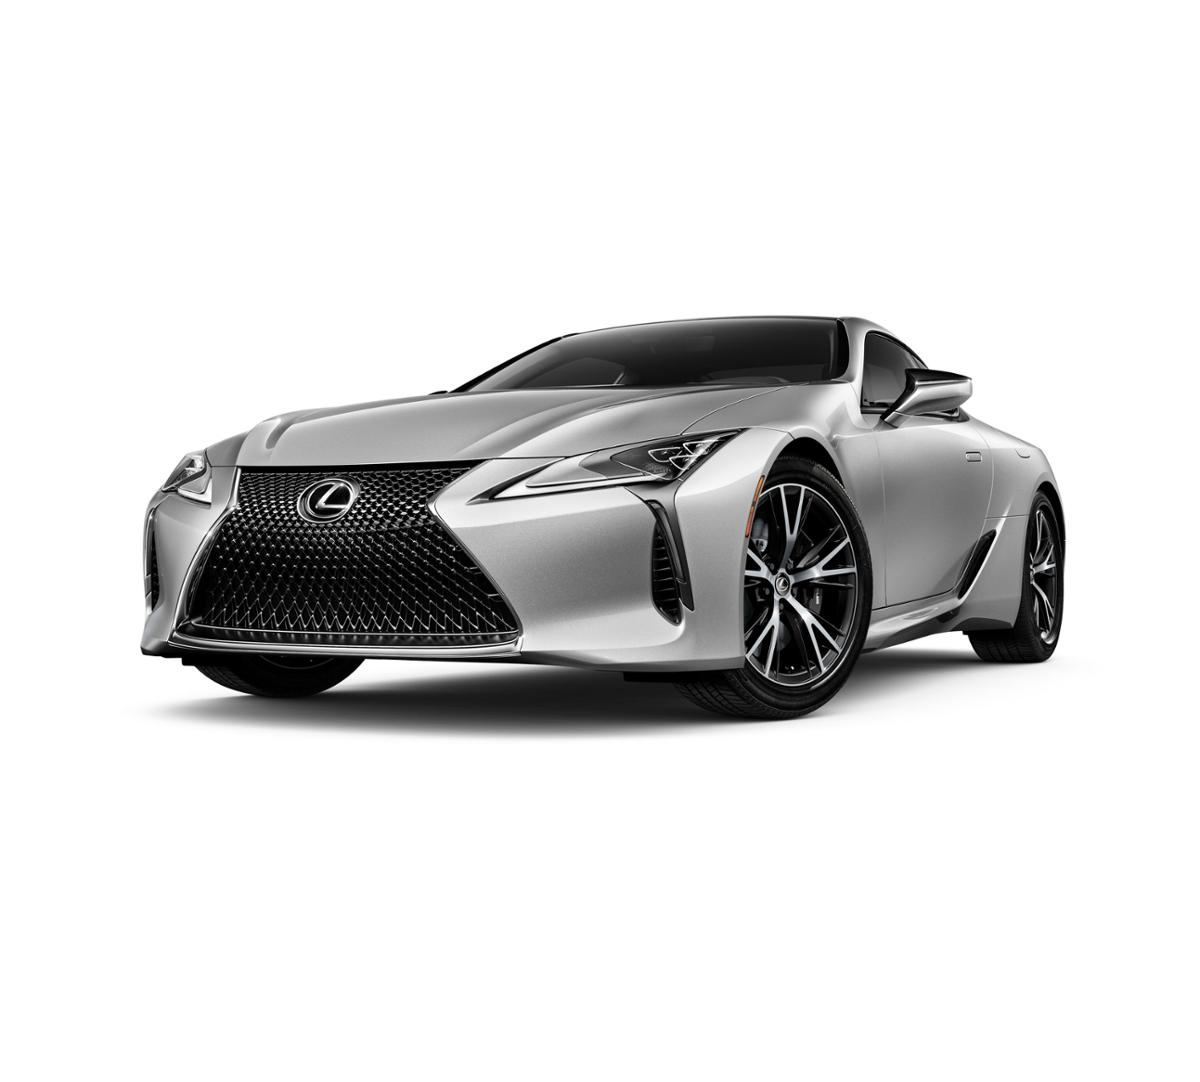 2018 lexus lc 500 f sport in liquid platinum for sale in santa barbara ca jthhp5ay6ja000983. Black Bedroom Furniture Sets. Home Design Ideas